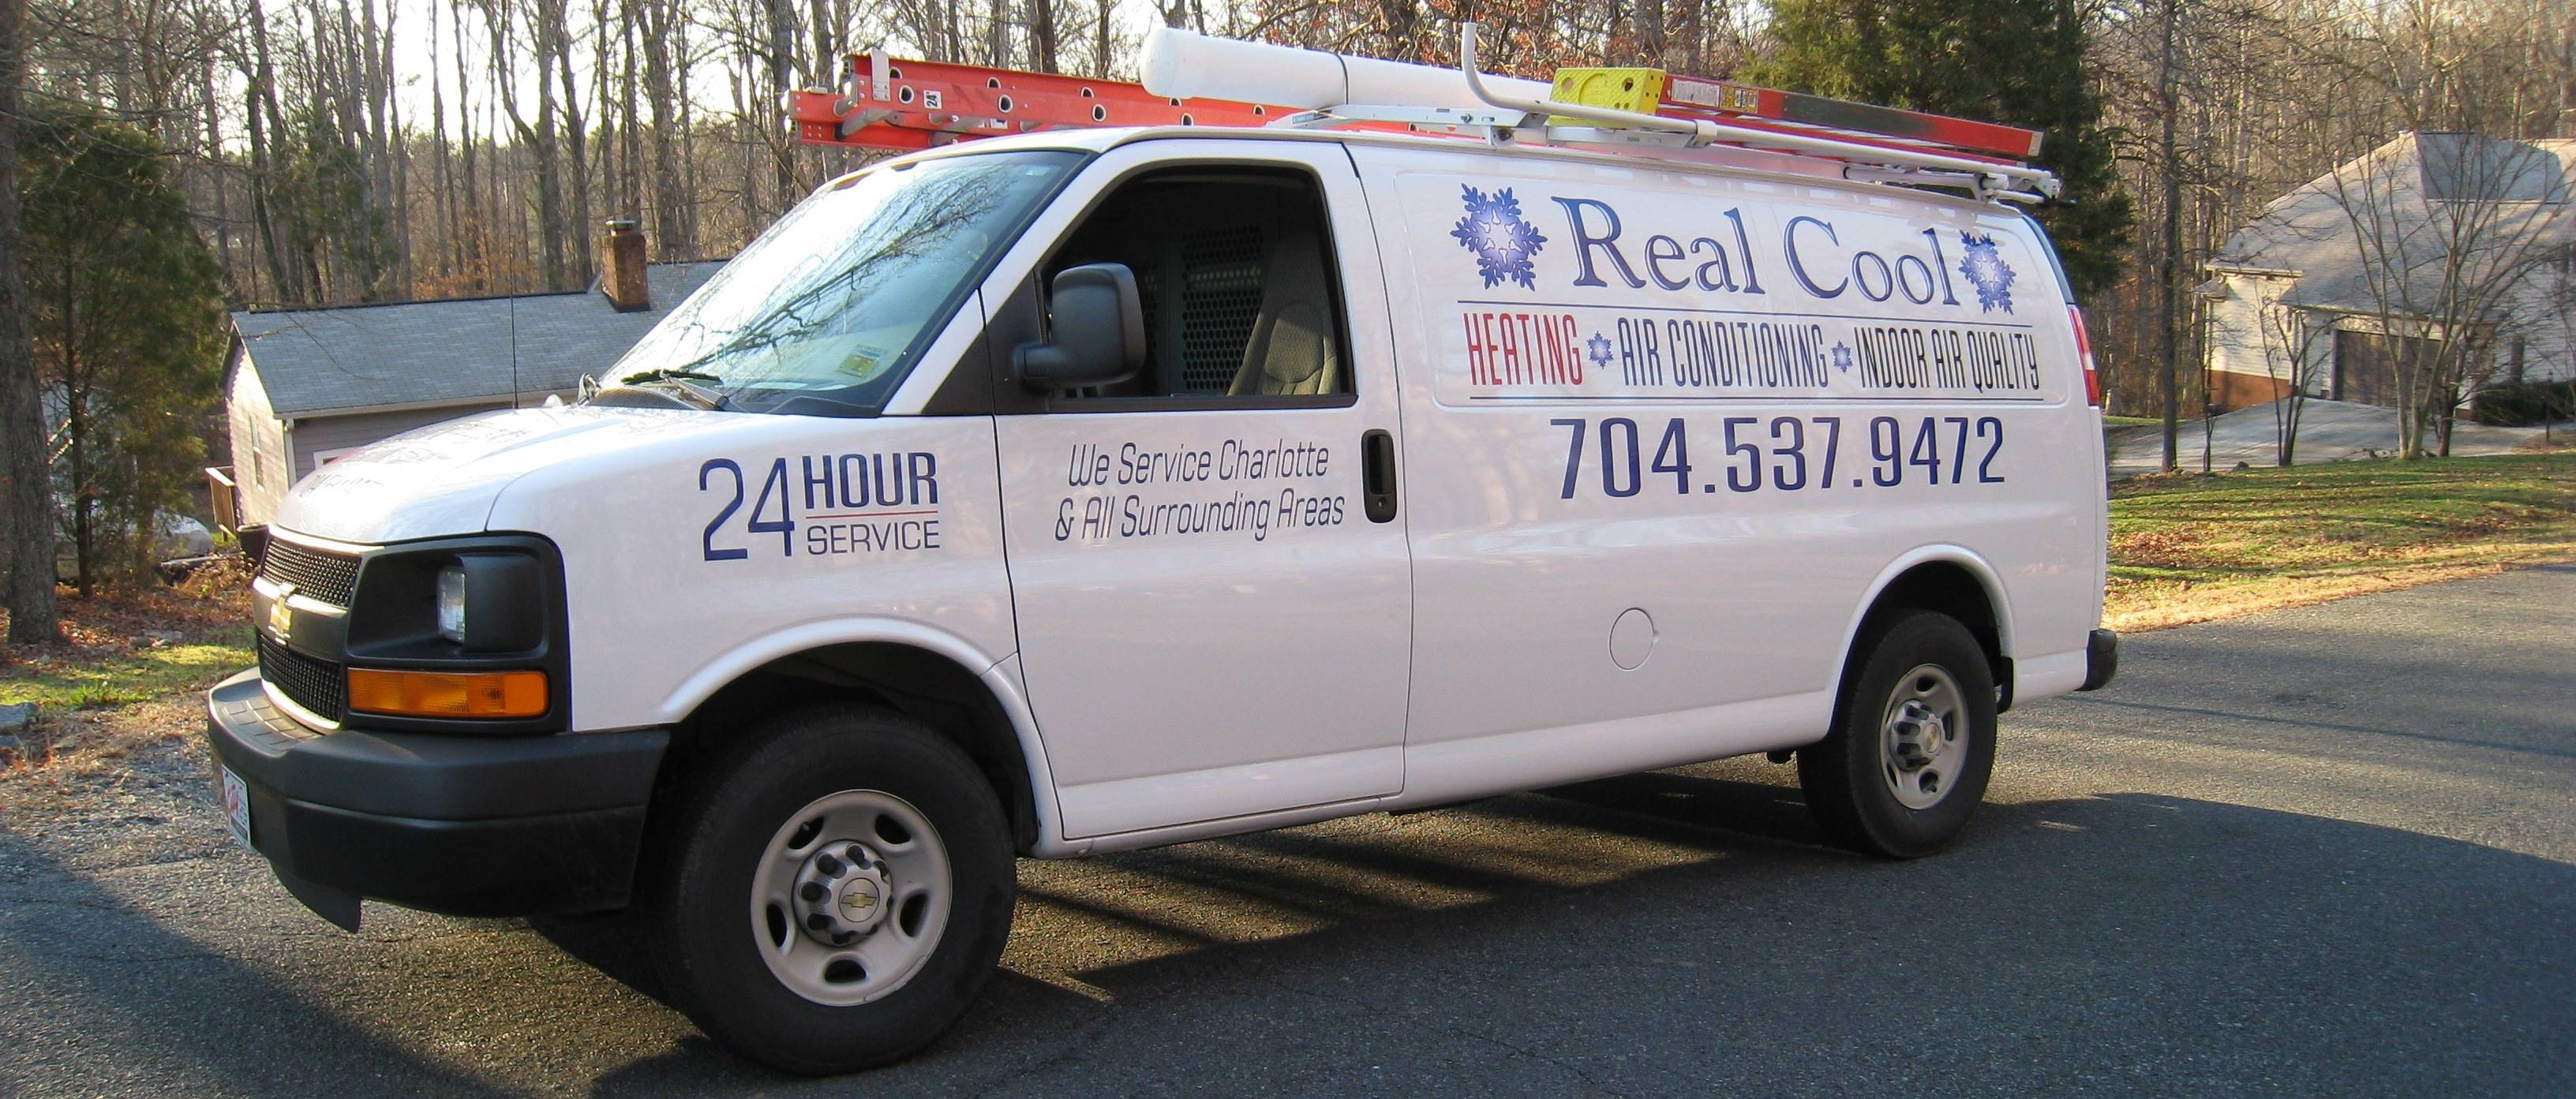 Specializing in heat pump repair our technicians will have your system up and running in no time